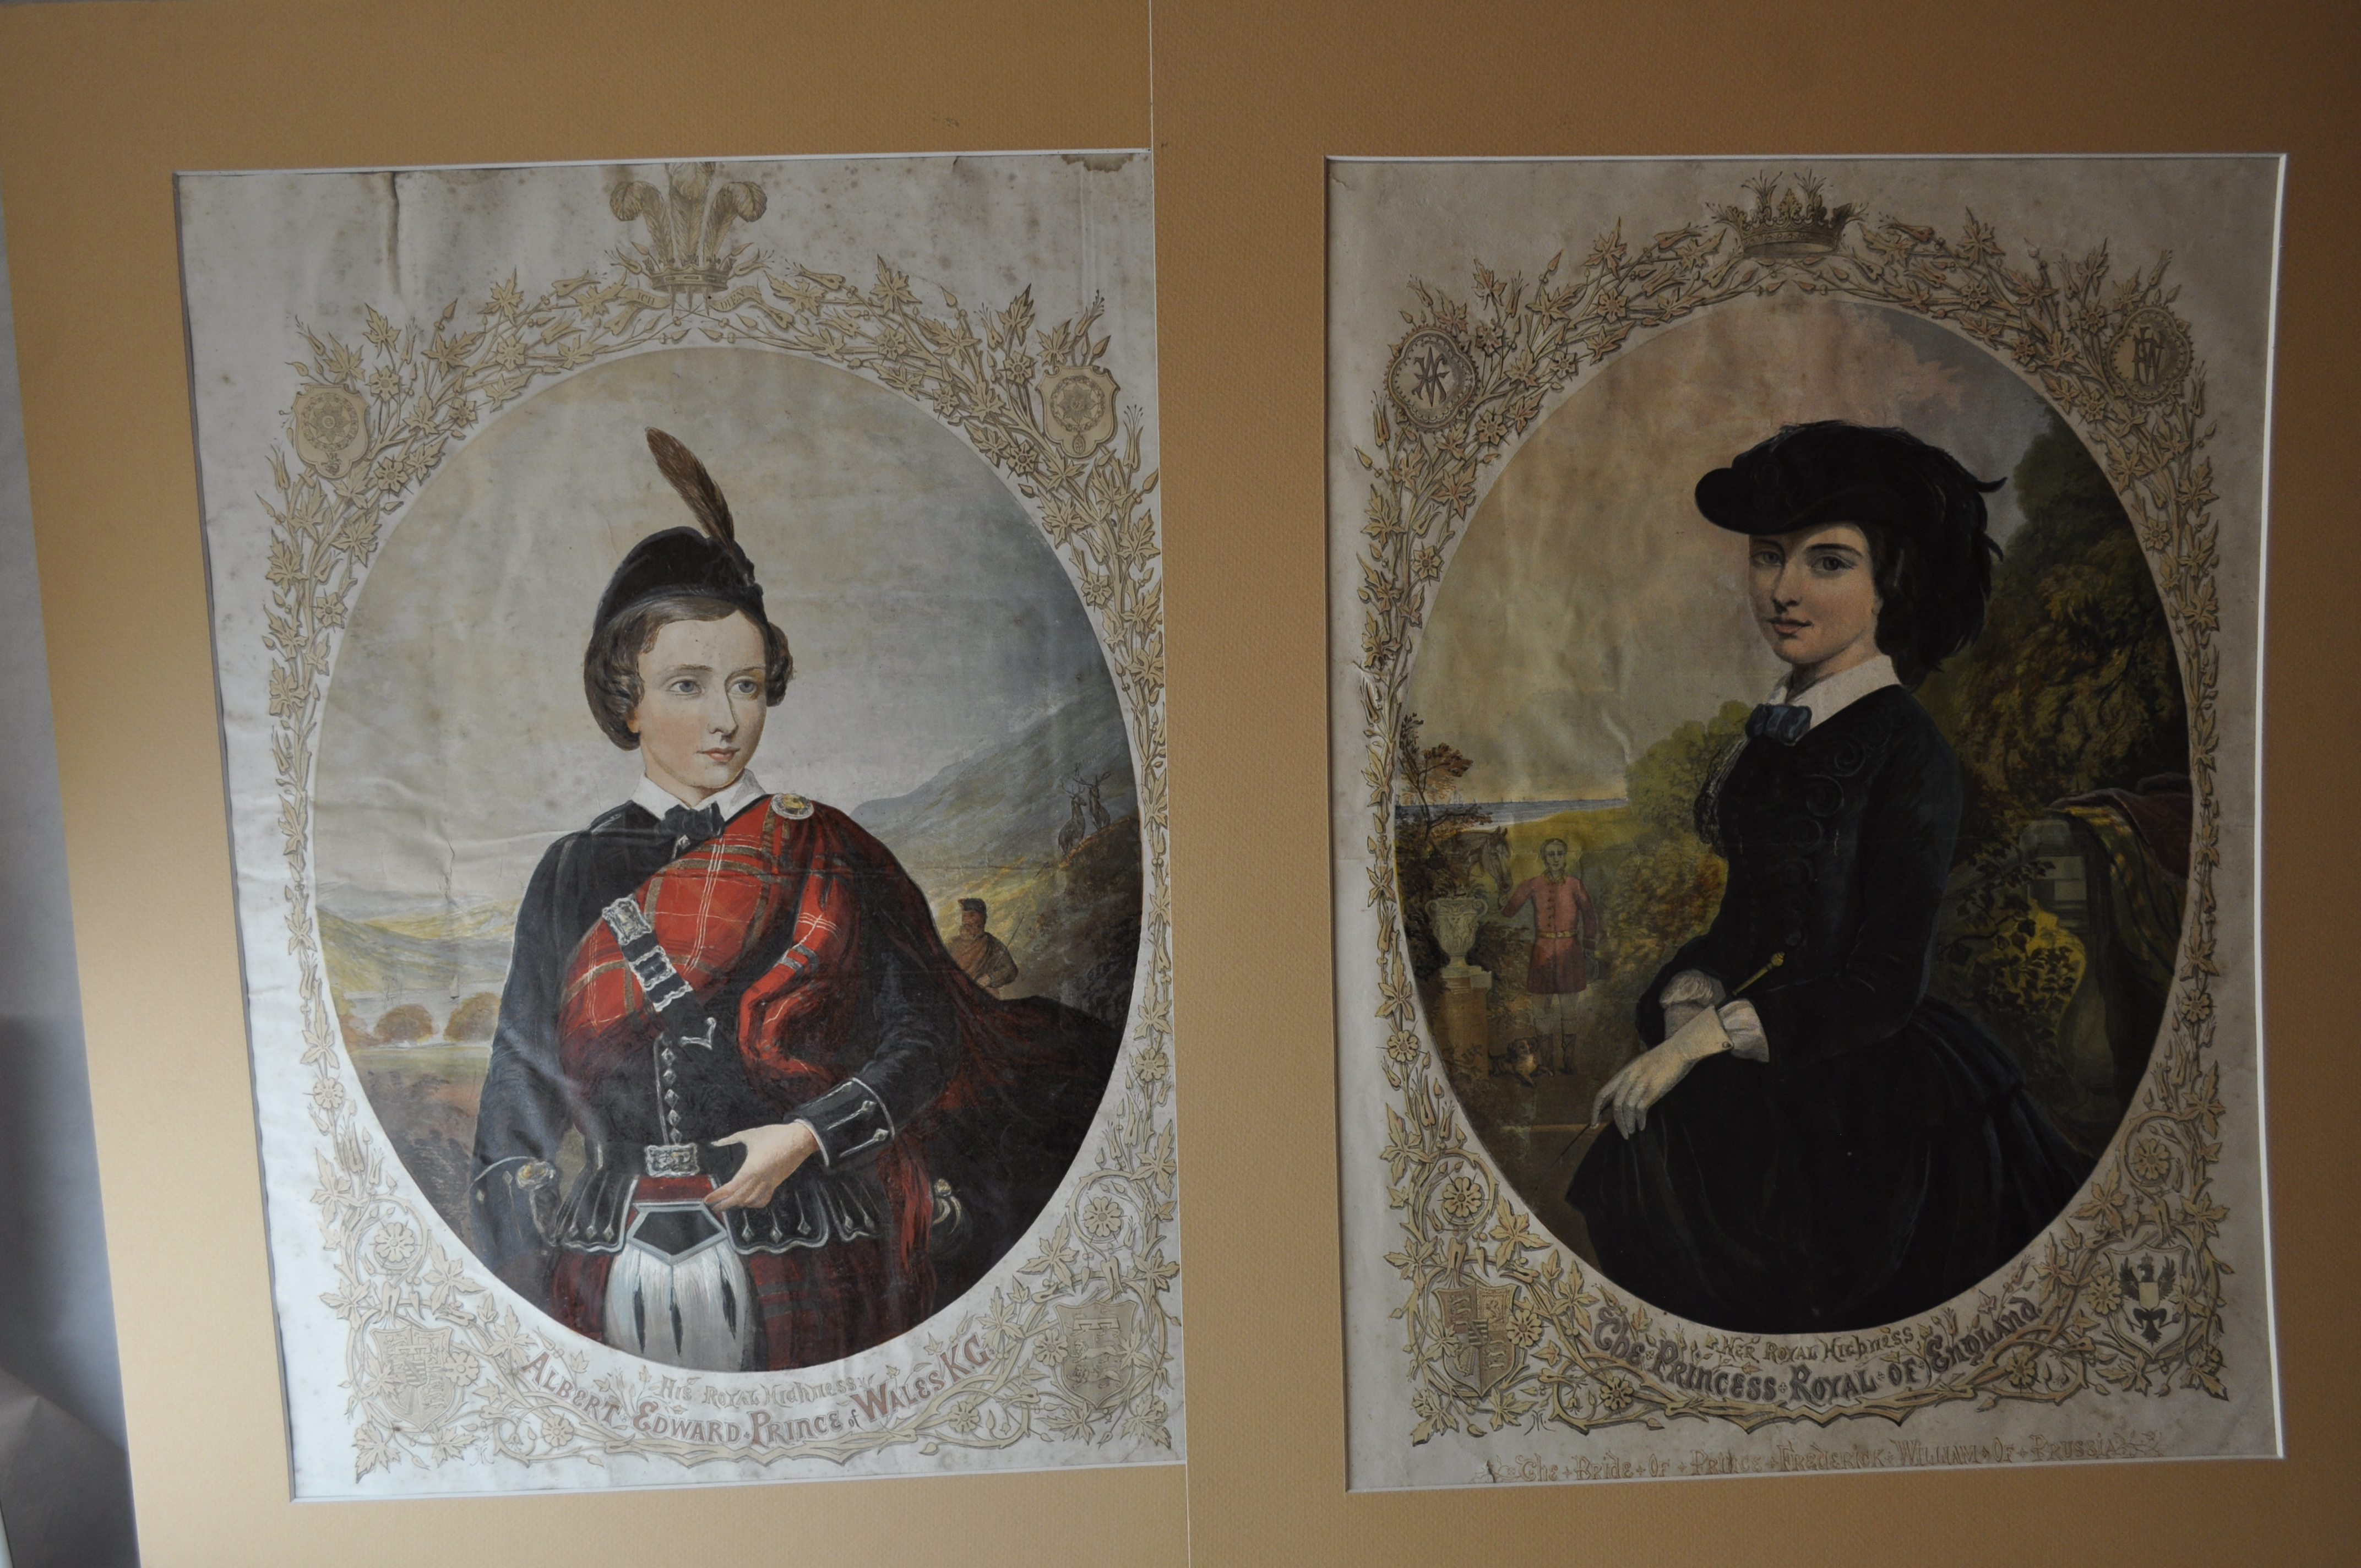 Lot 7309 - A pair of portrait prints of HRH Albert Edward, Prince of Wales, and HRH The Princess Royal of